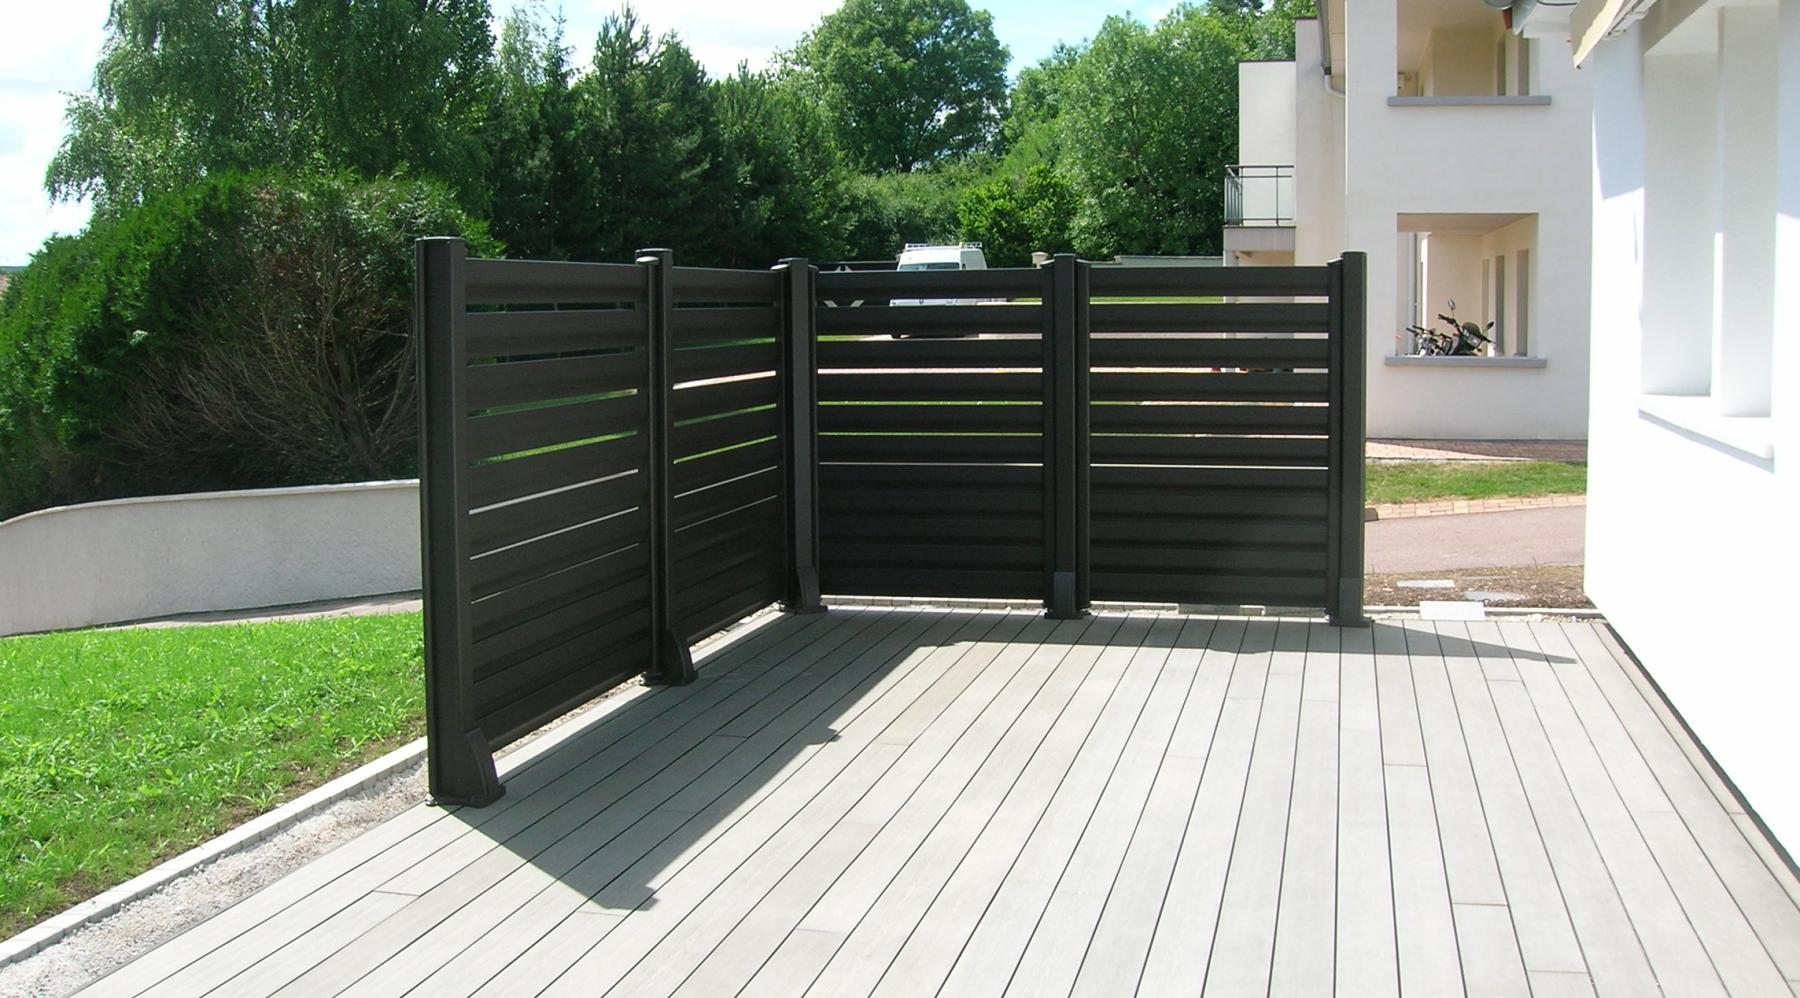 Barriere de balcon en alu for Cloture exterieur